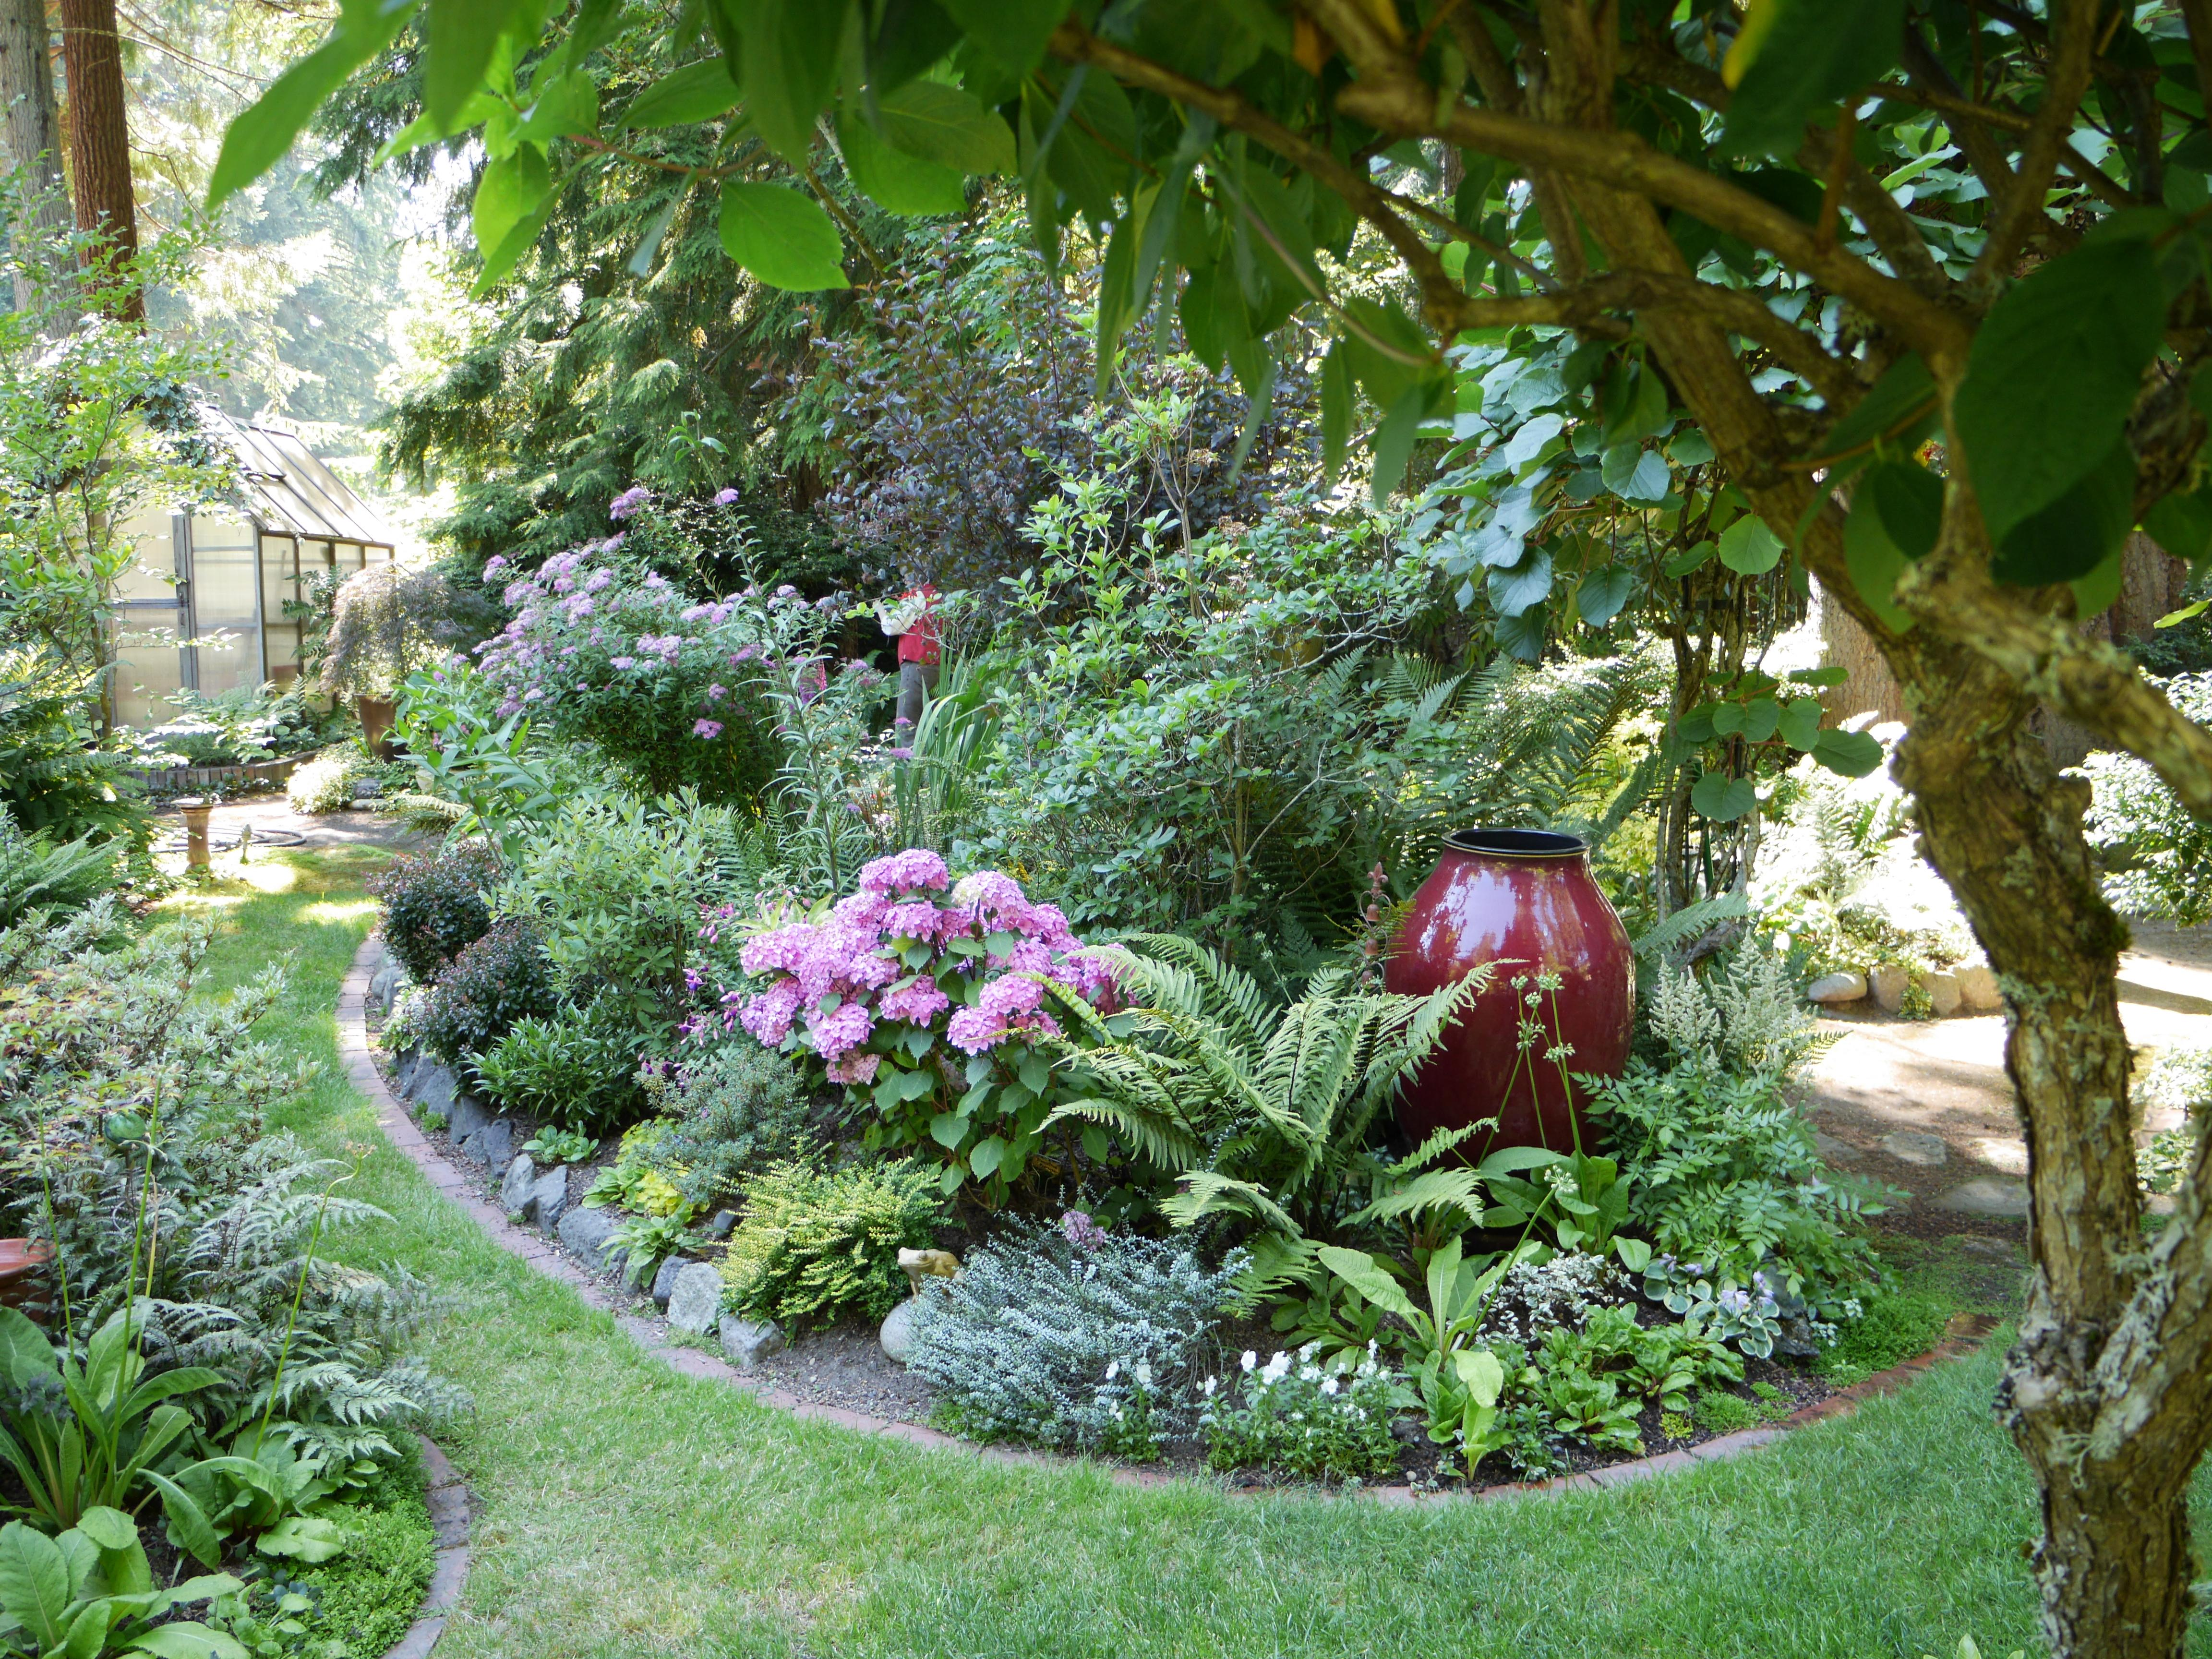 On Saturday, June 22, you are cordially invited to five private gardens in Bainbridge Island, through the Garden Conservancy Open Days program, 10 a.m. to 4 p.m. The Open Day is rain or shine, and no reservations are required. Admission is $10 per garden; children 12 and under are free. 9734 Manitou Place. Surrounded by waves of cedar pickets and an iron gate made by the owner, this private third-of-an-acre site sits at the end of a quiet cul-de-sac. Nestled among tall firs, vine maples, rhododendrons, azaleas, Viburnum, and magnolias, these gardens have been a work in progress for more than thirty years. Stroll the pathways, each leading to a different garden room, and you will discover seemingly endless groupings of Hosta, Helleborus, Hebes, barberries, Spirea, Farfugium, Euphorbia, and more than 100 varieties of ferns—the gardener's passion. These gardens have interest throughout the year with hardscape and water features.{ }(Image courtesy of Stephanie Werskey).